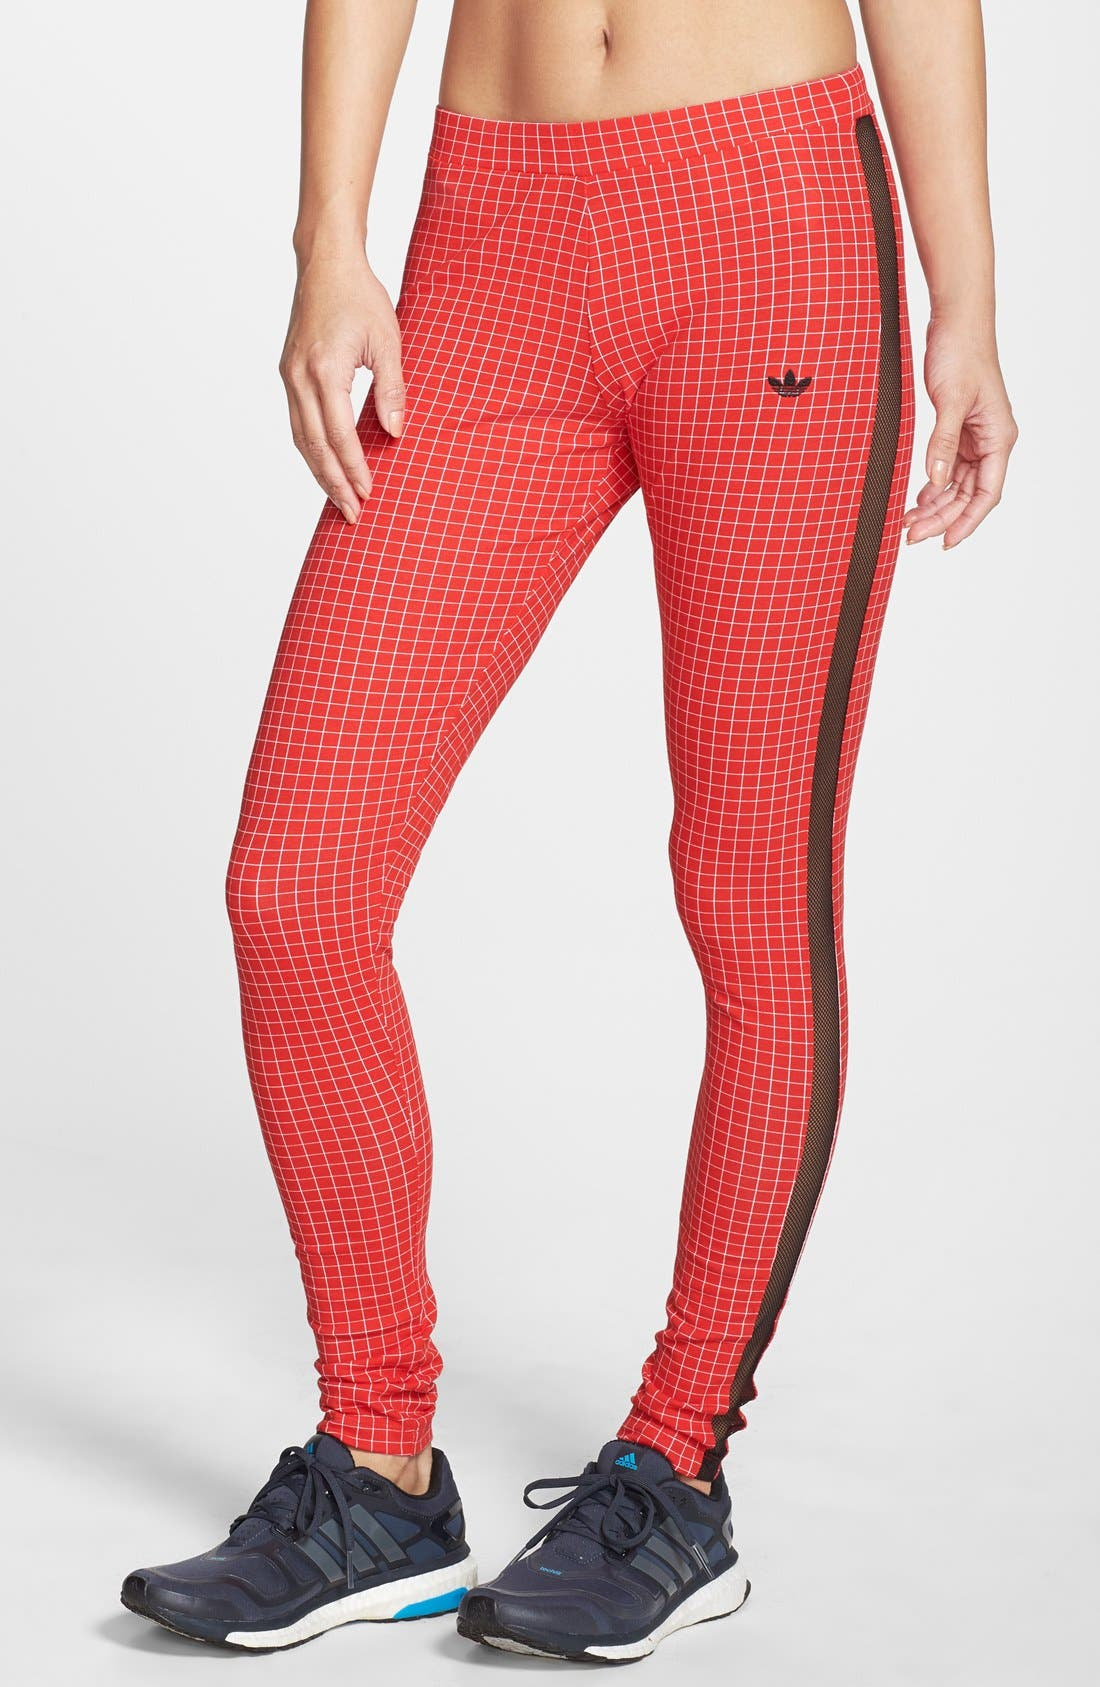 Alternate Image 1 Selected - adidas 'Modern Tartan' Leggings